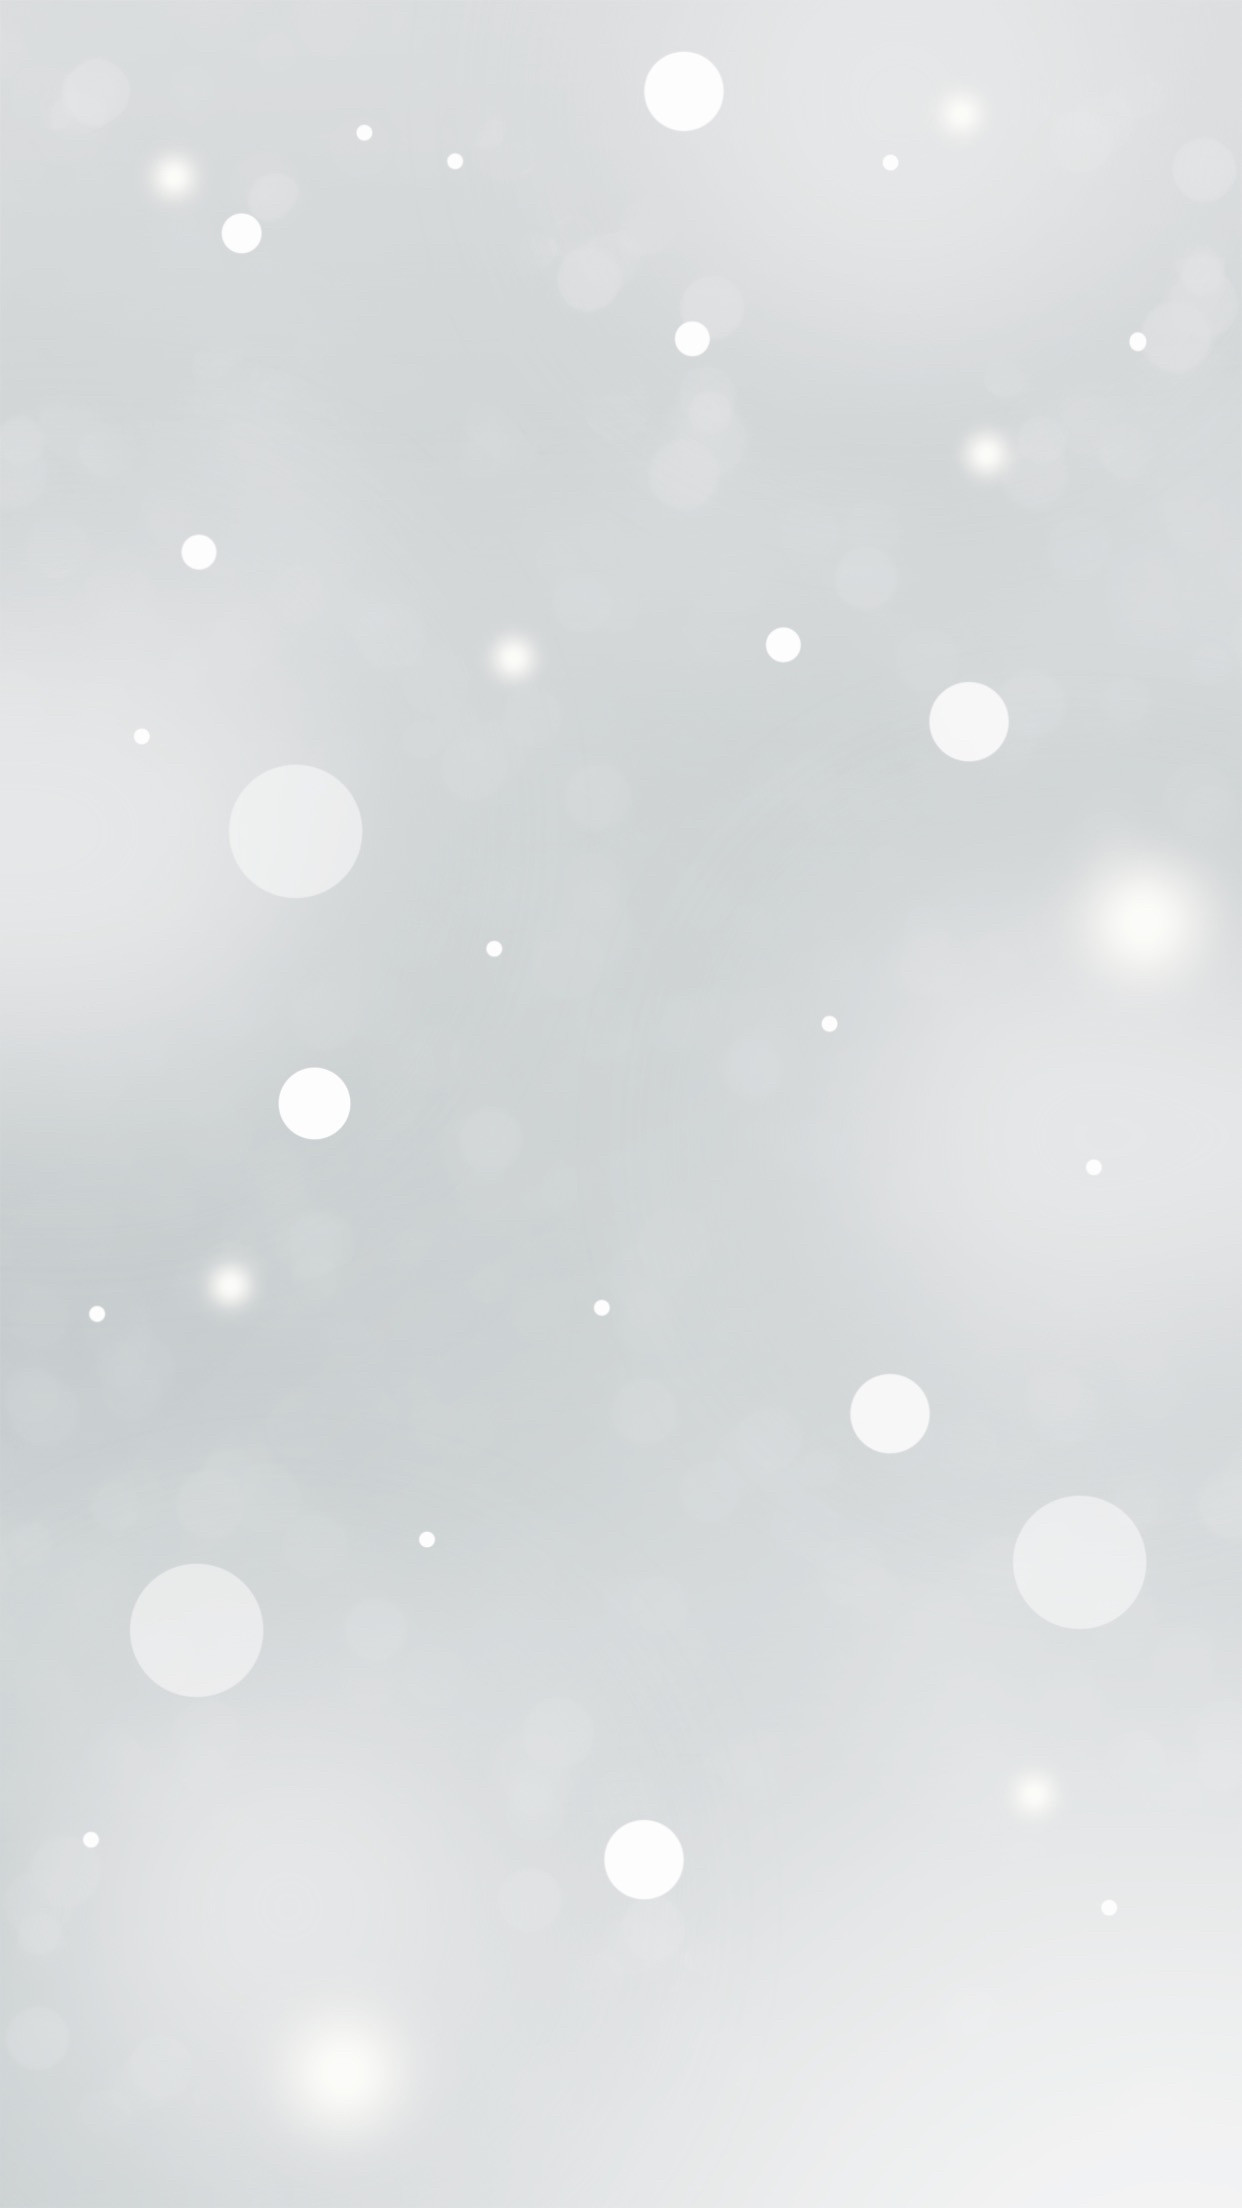 71+ White Christmas Wallpapers on WallpaperPlay